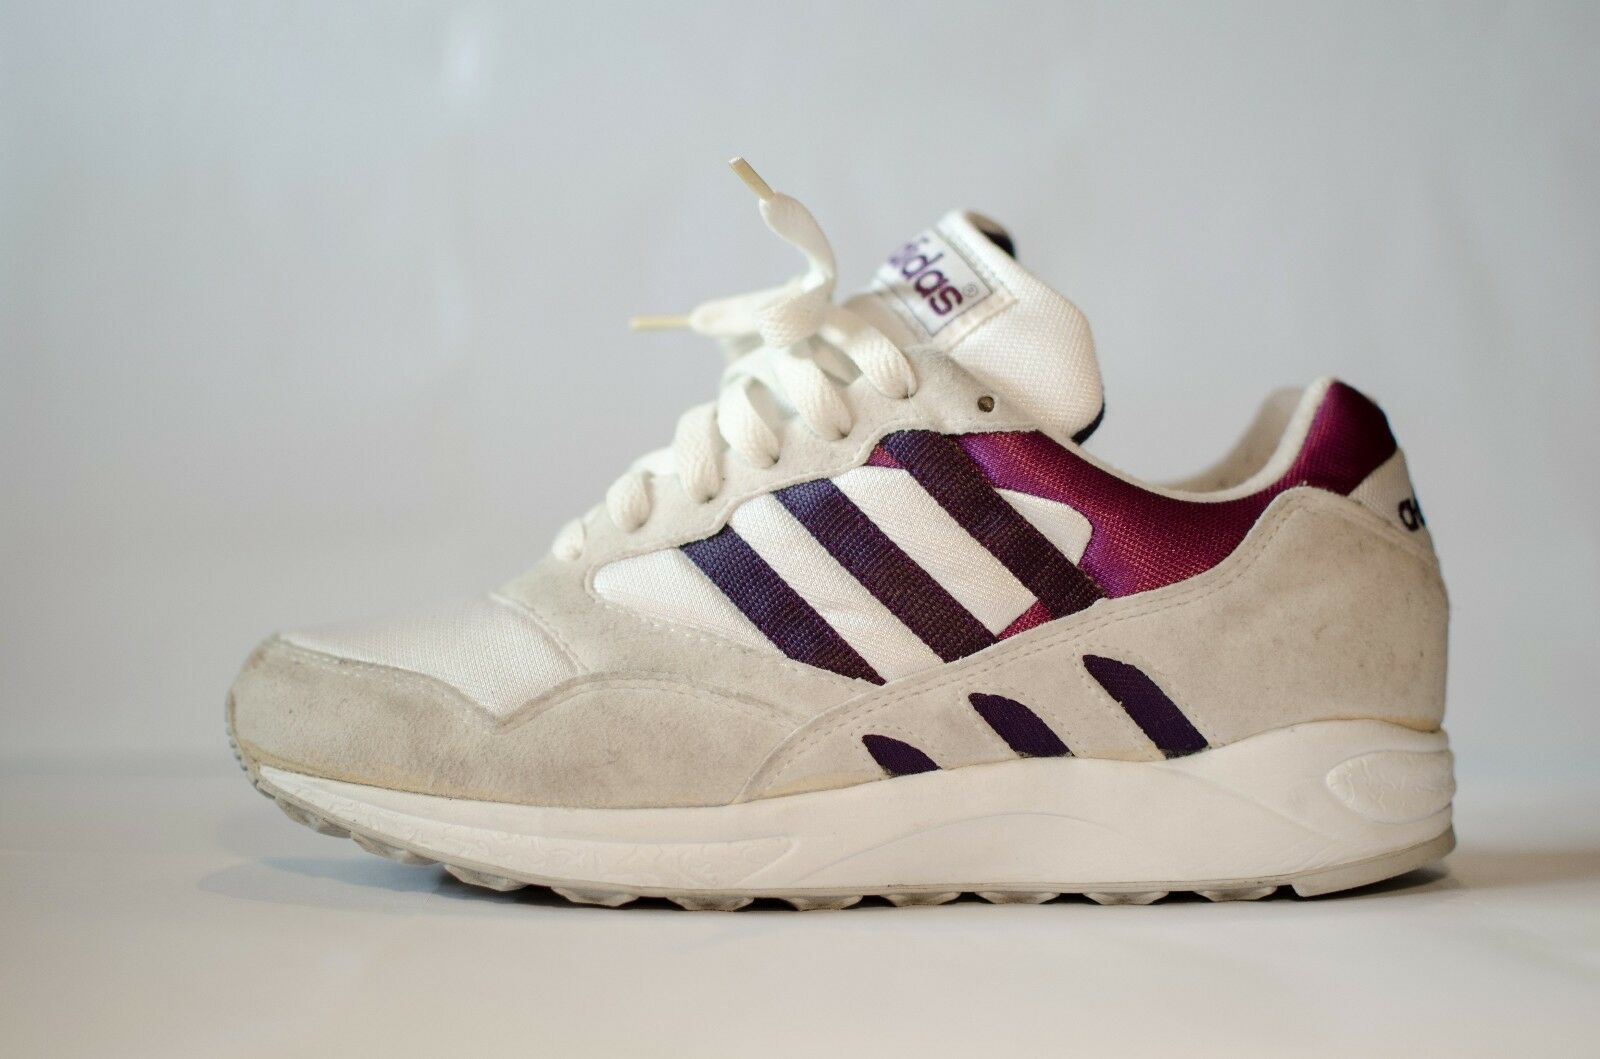 ADIDAS EURO SUPER 7,5 US 6 UK 39 1 3 OG VINTAGE 1995